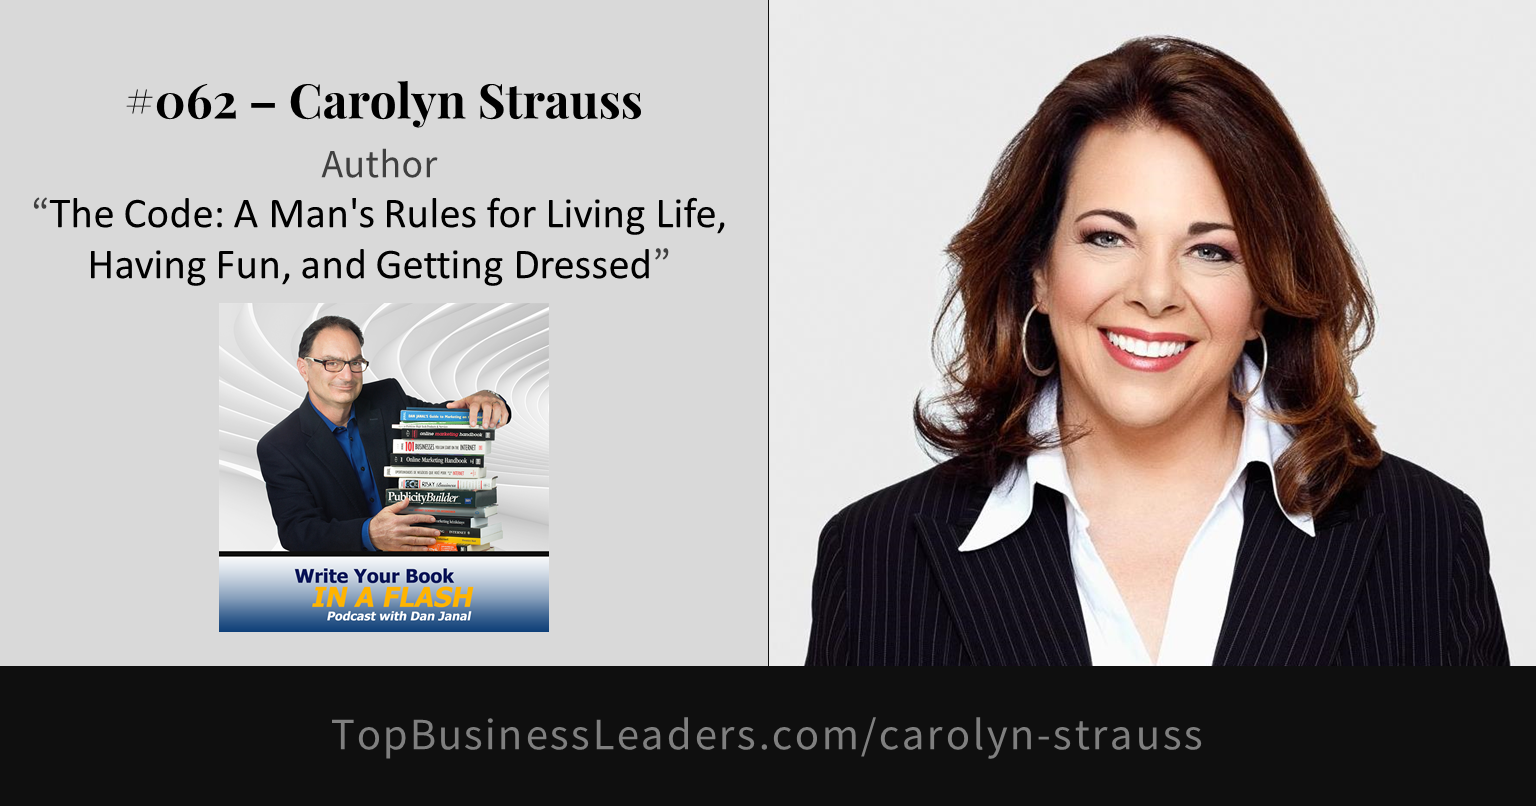 carolyn-strauss-author-the-code-a-mans-rules-for-living-life-having-fun-getting-dressed